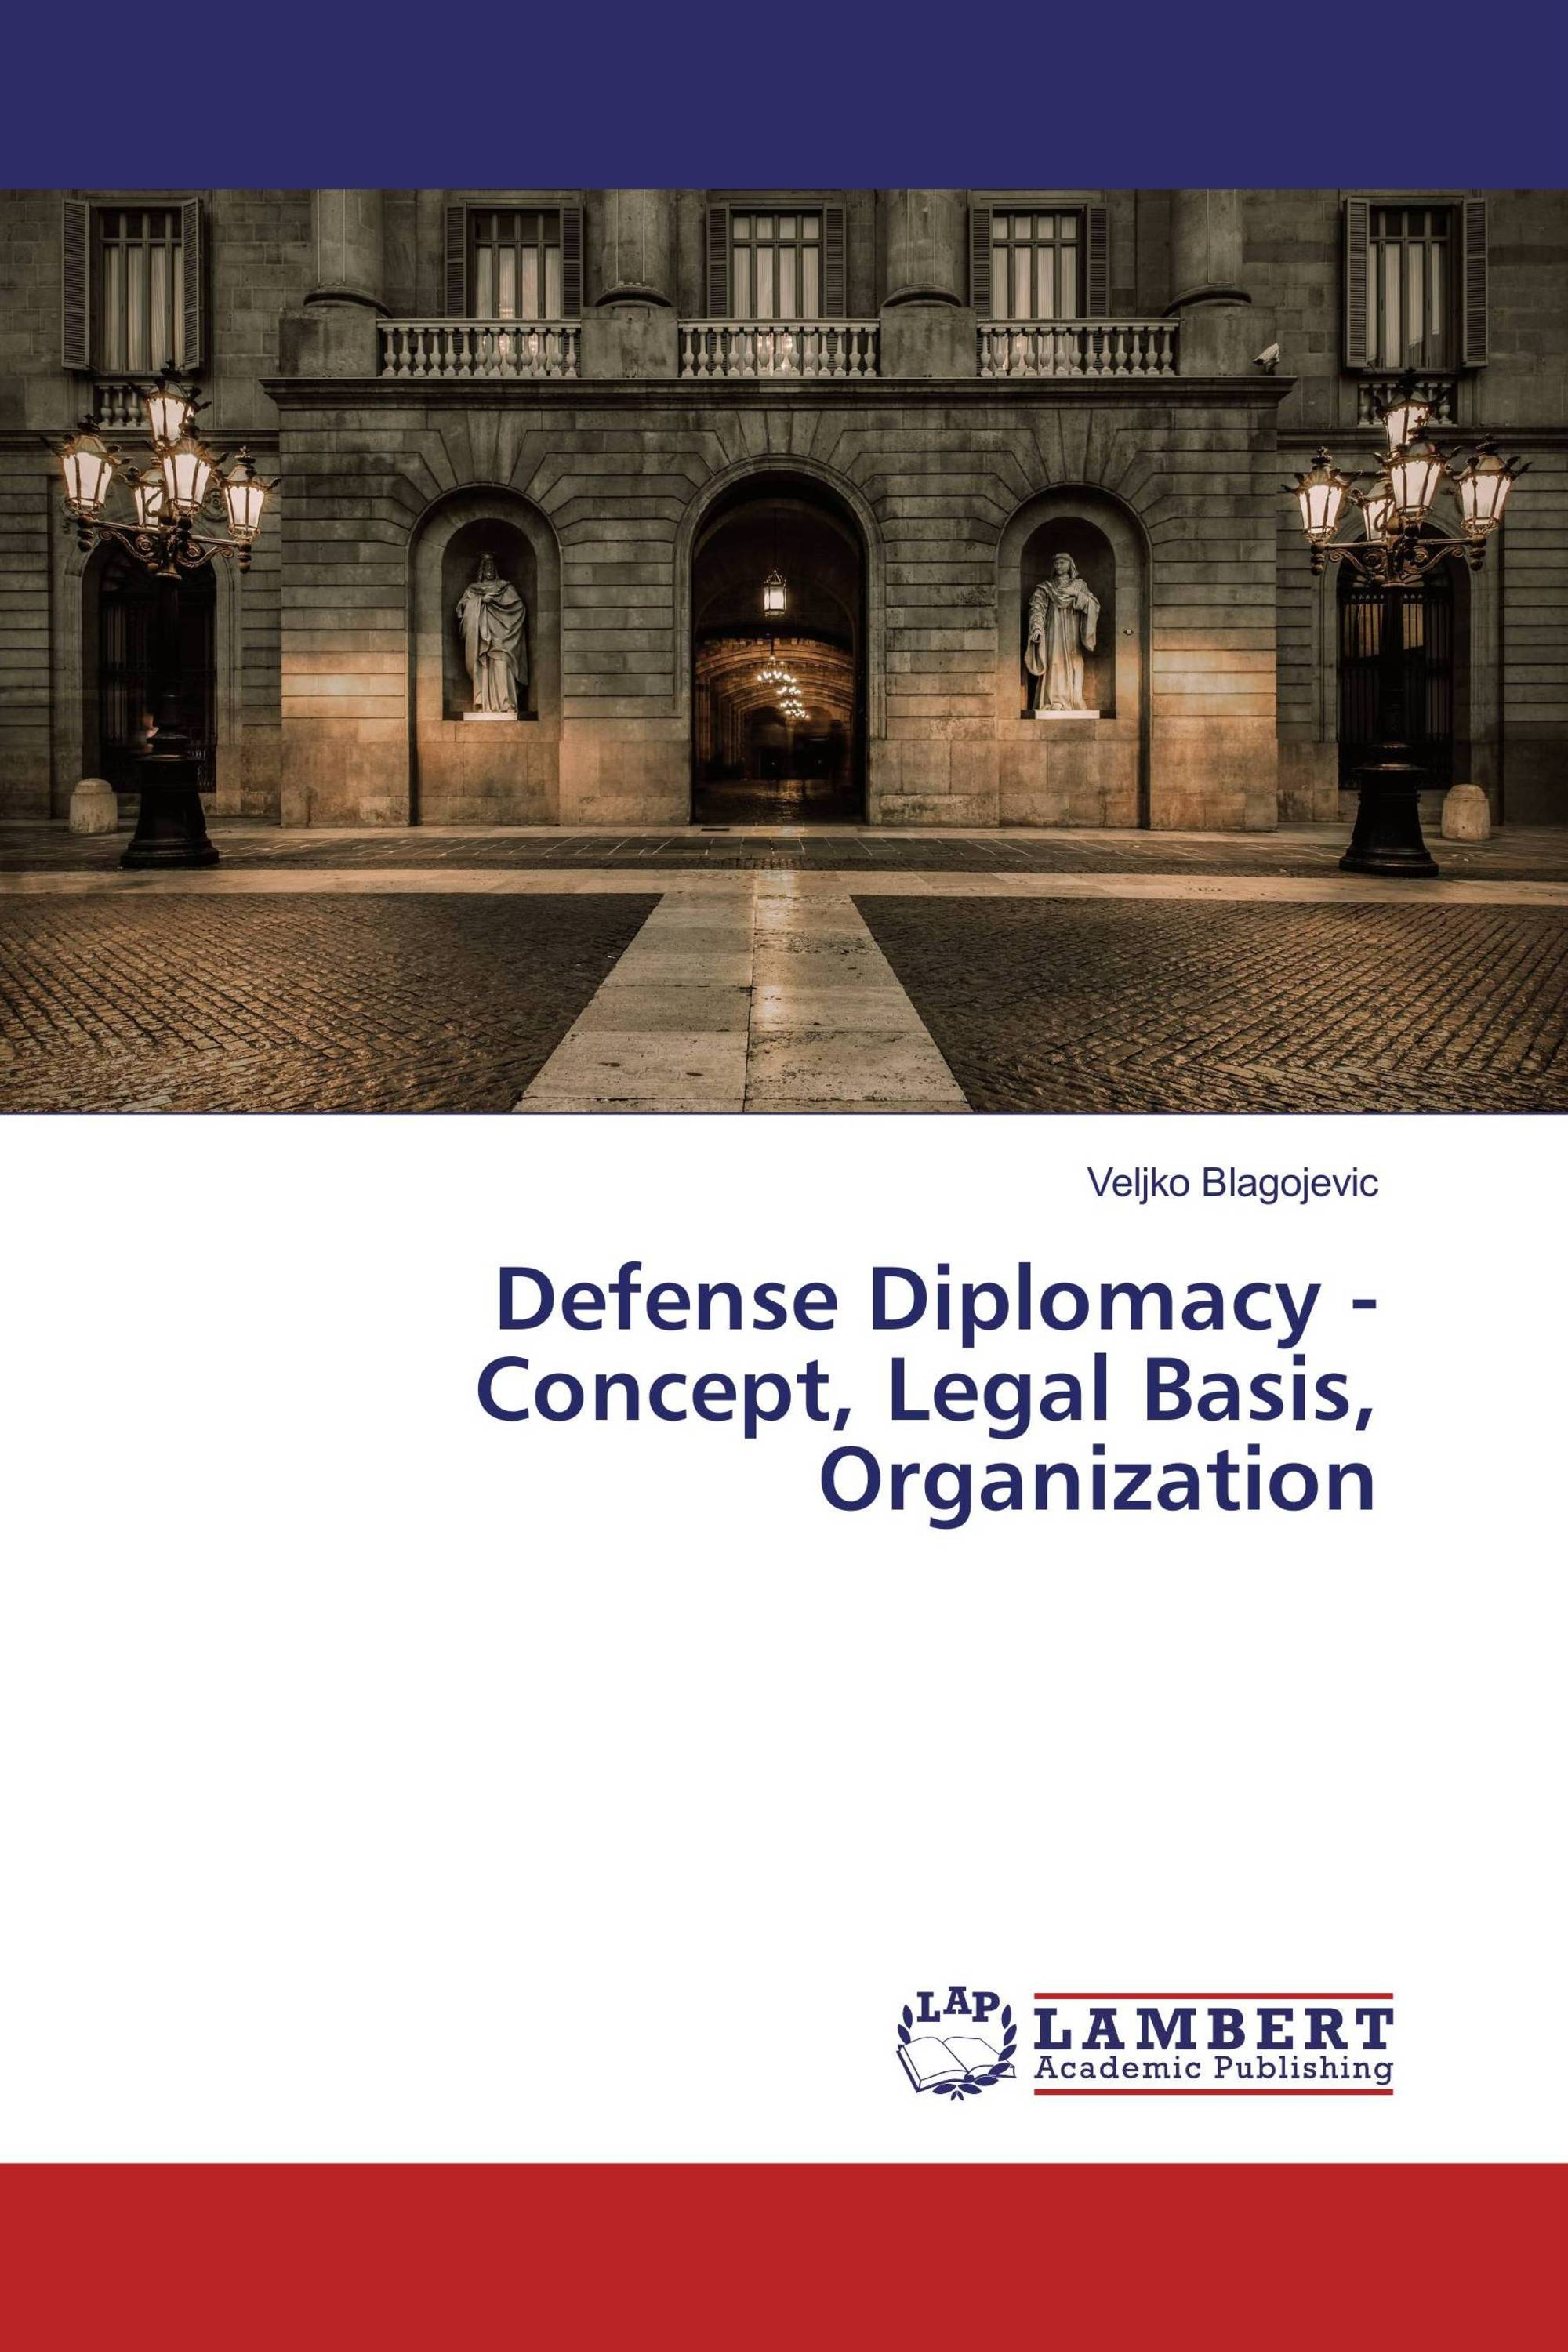 Veljko Blagojević Defense Diplomacy Concept Legal Basis Organization Lambert Academic Publishing 2017